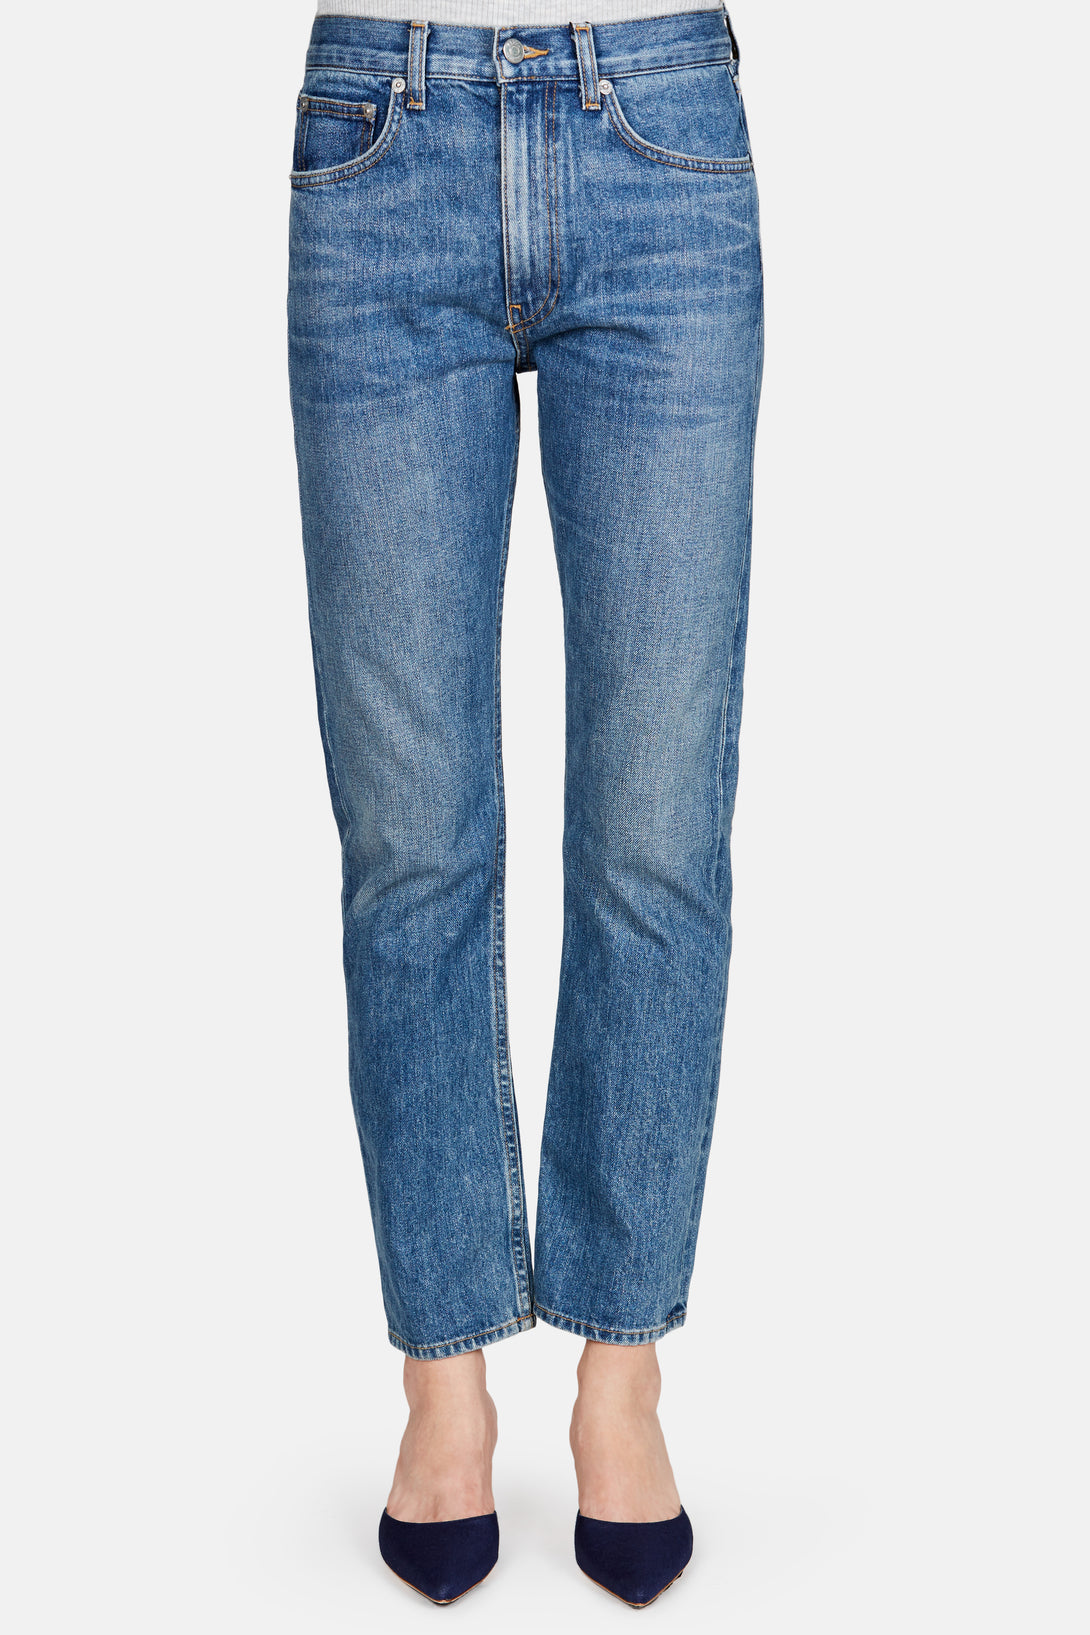 Wright Denim Jean - Dark Vintage